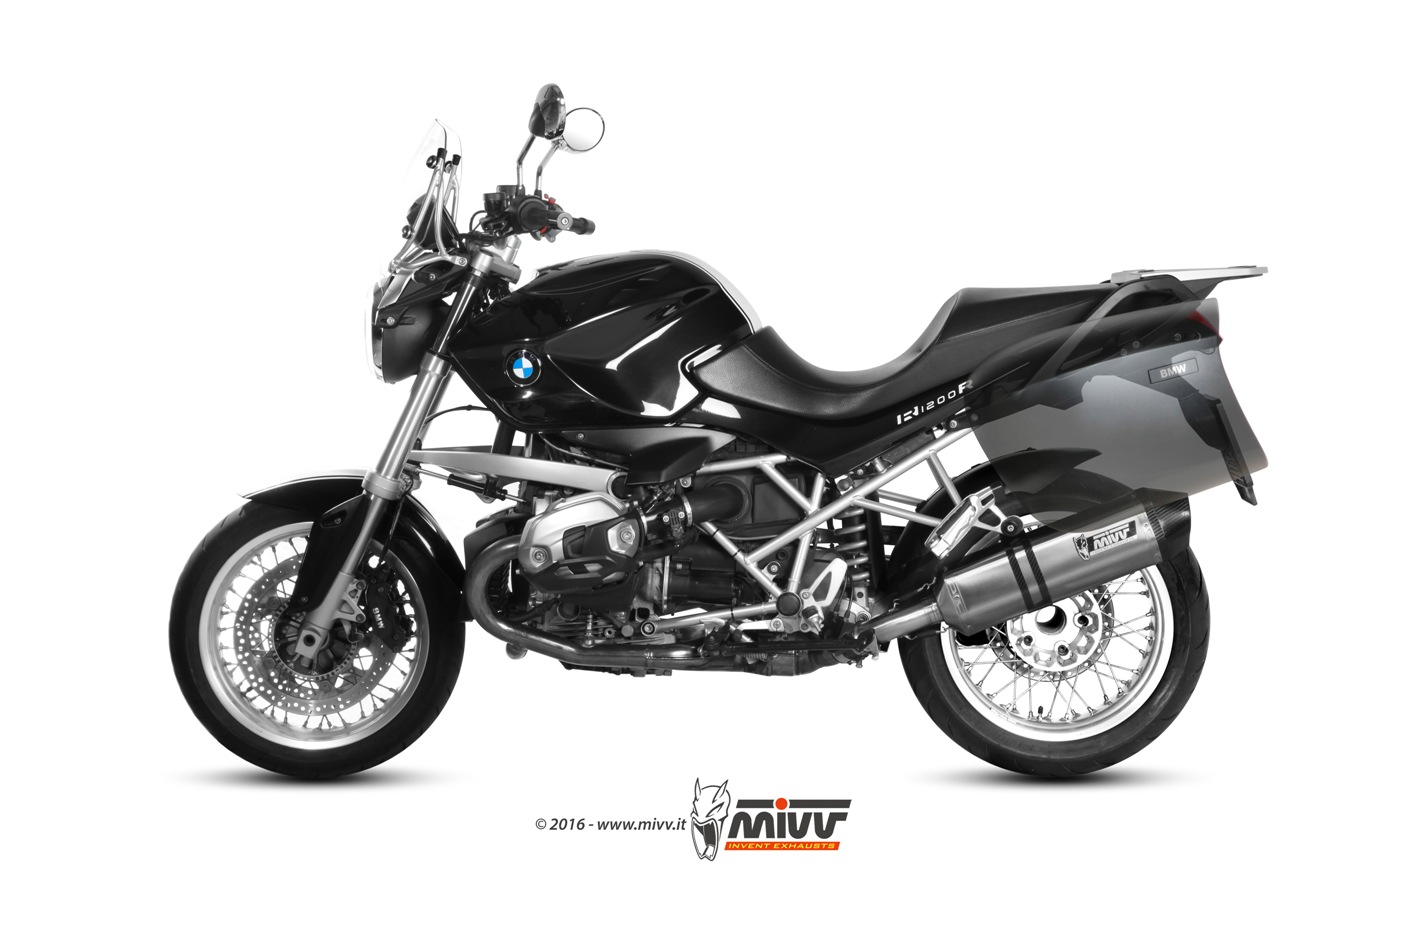 bmw r 1200 r exhaust mivv speed edge stainless steel mivv. Black Bedroom Furniture Sets. Home Design Ideas